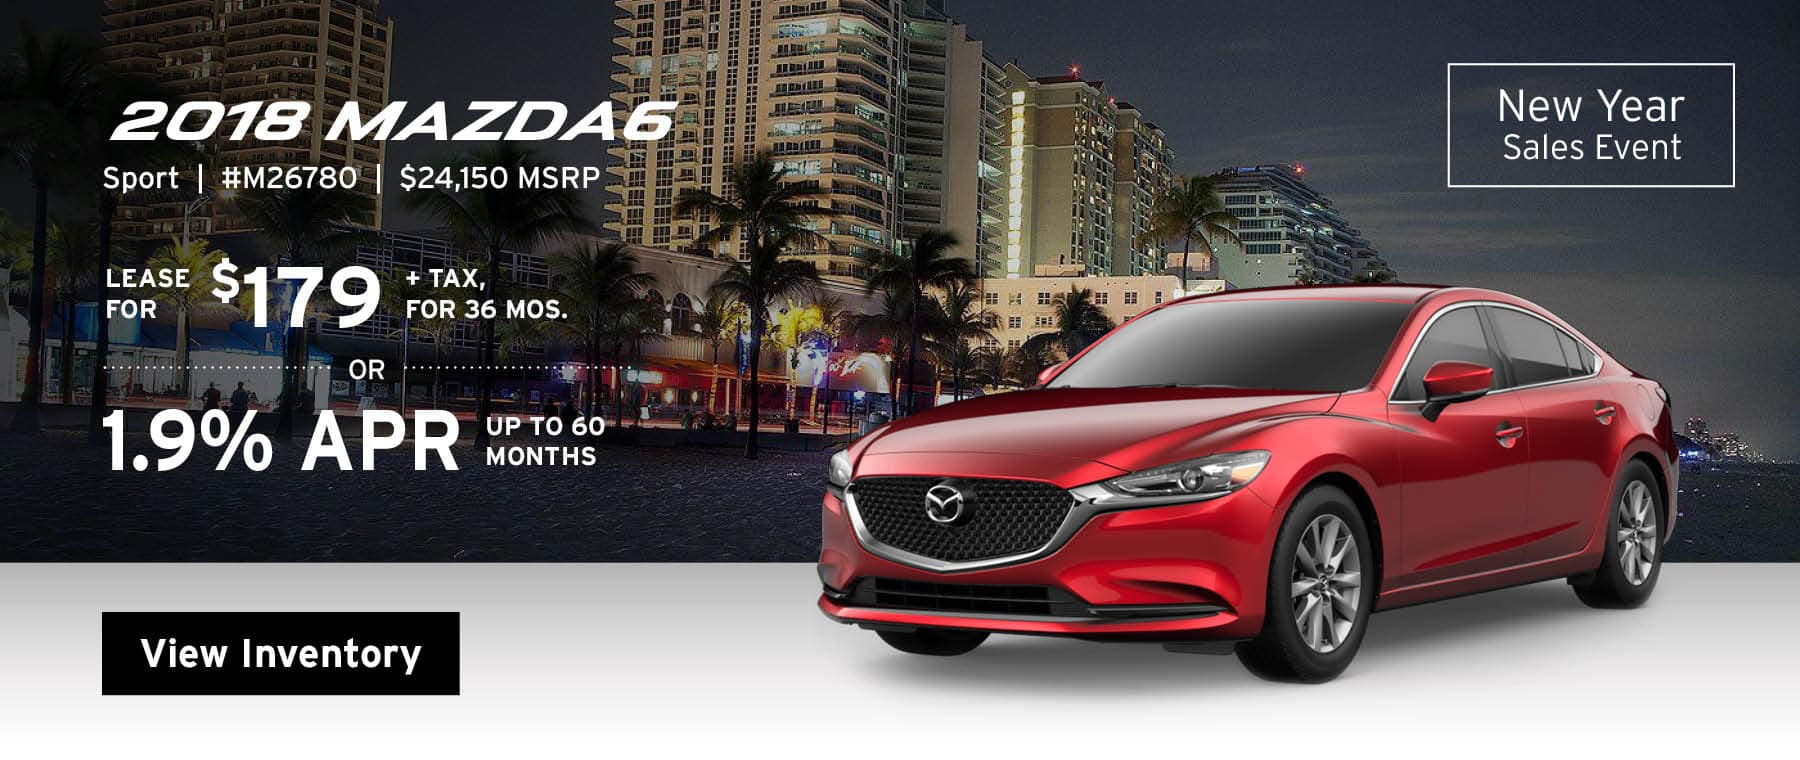 Lease the 2018 Mazda6 Sport for $179, plus tax for 36 months, or 1.9% APR up to 60 months.